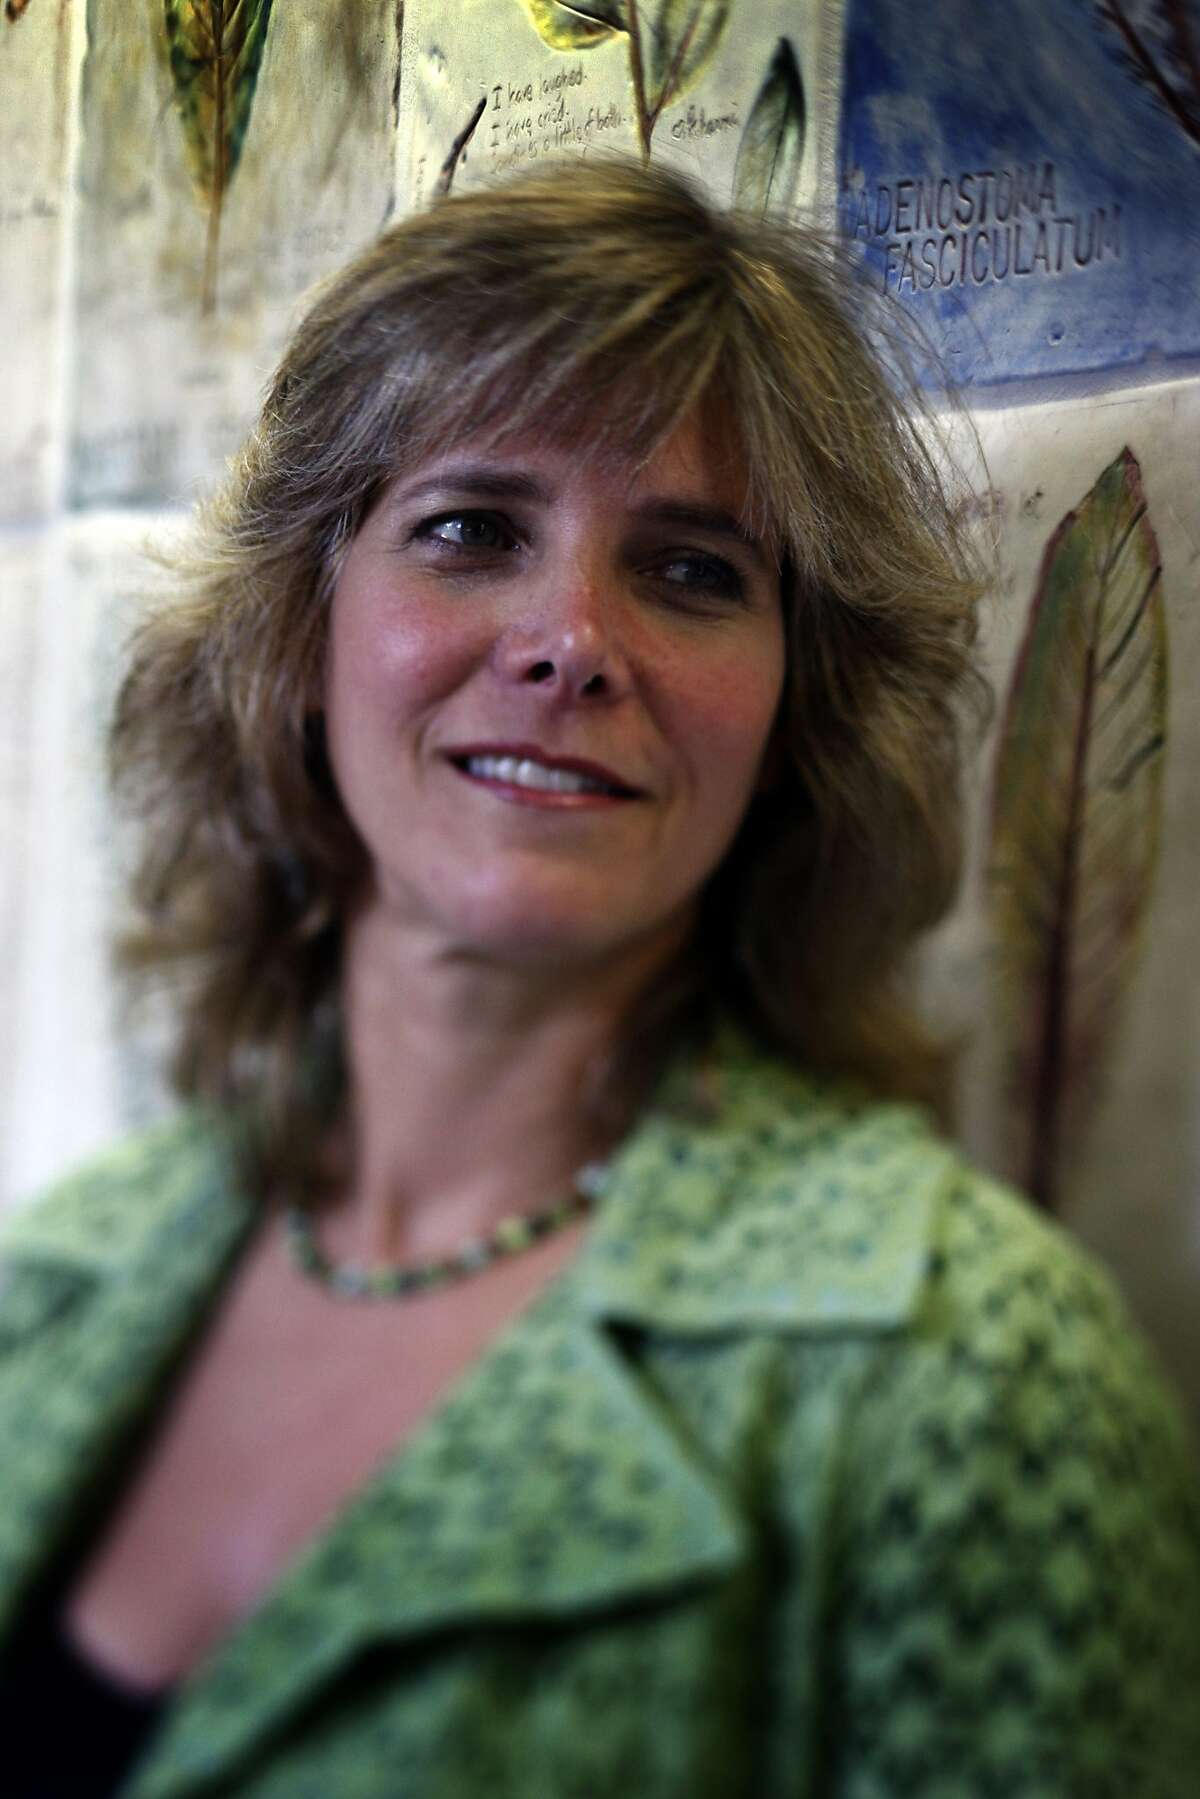 Pioneers: 3. Dr. Laura Esserman (pictured) and Shelley Hwang (breast cancer research)